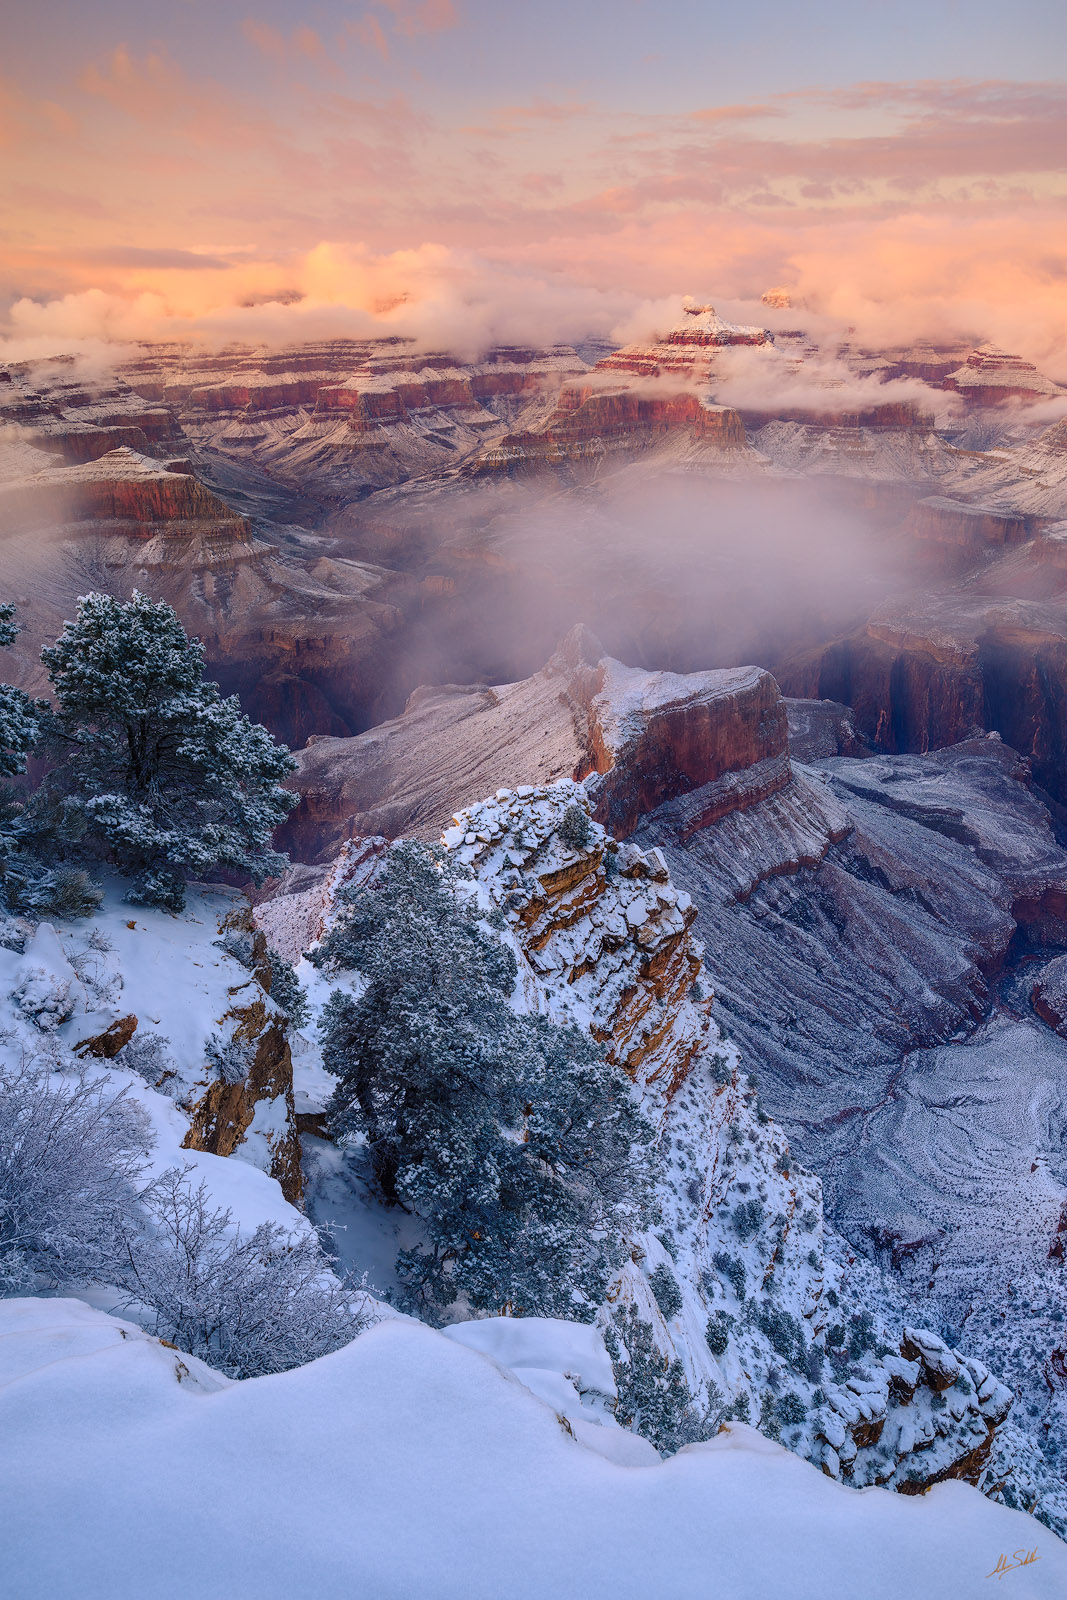 The winter storm of New Year's Day, 2015, clears from the Isis Temple and the Grand Canyon. From Hopi Point on the South Rim...